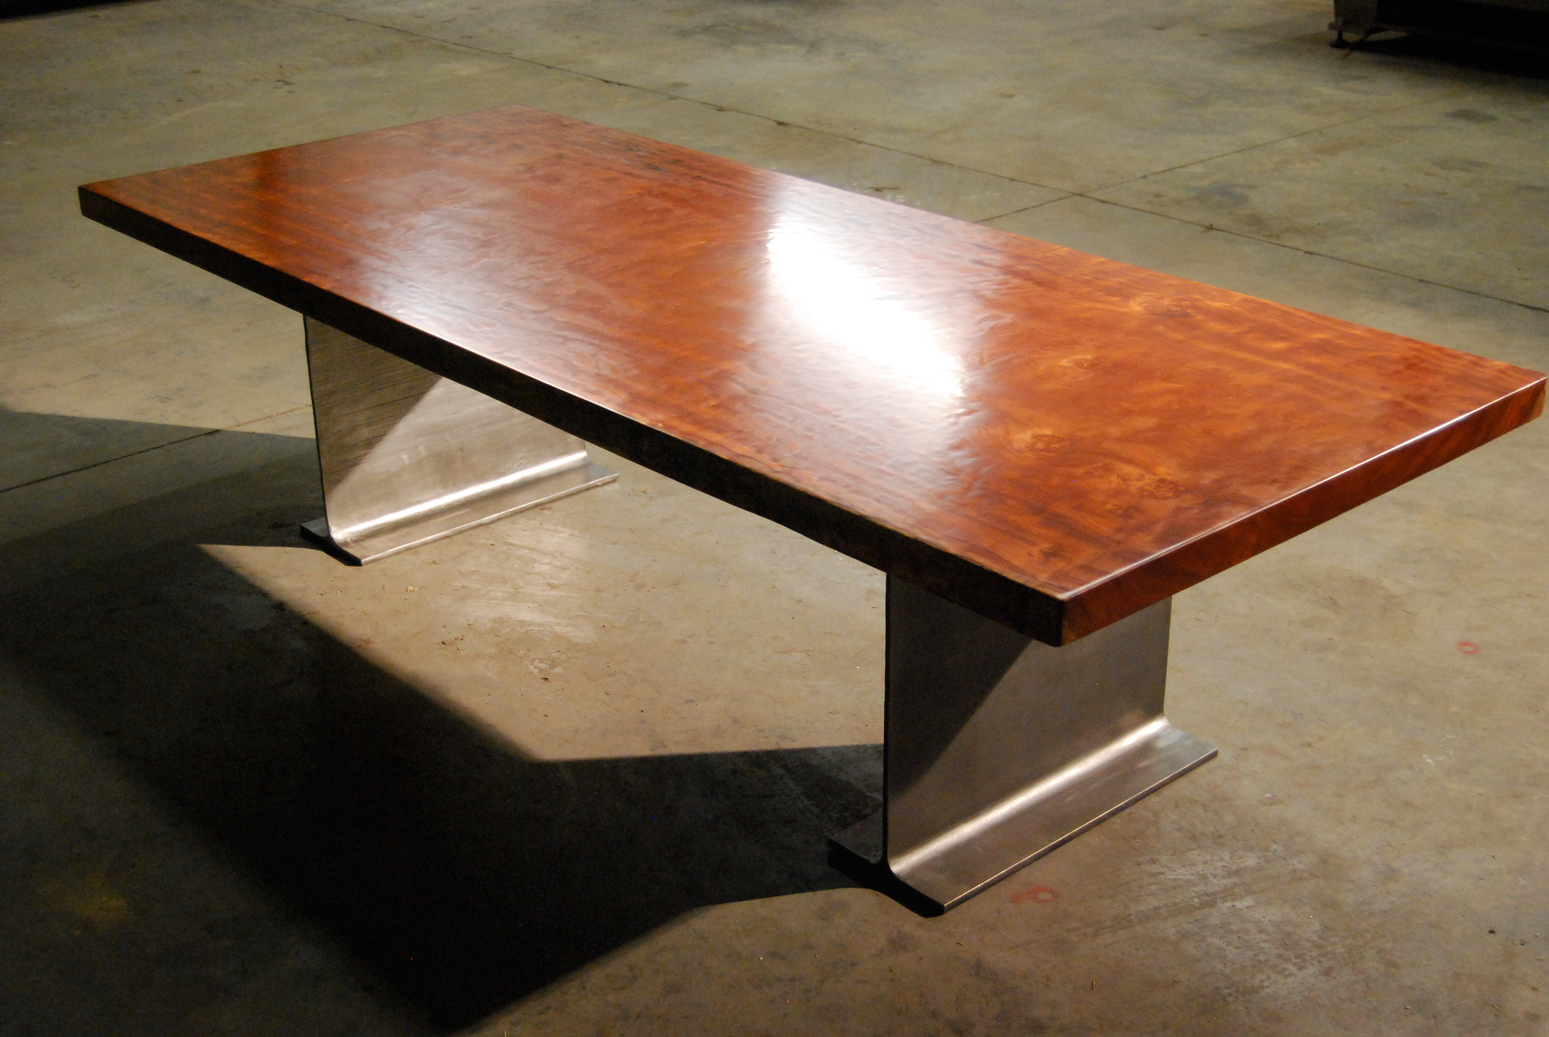 web-jt-studio-bubinga-table.jpg